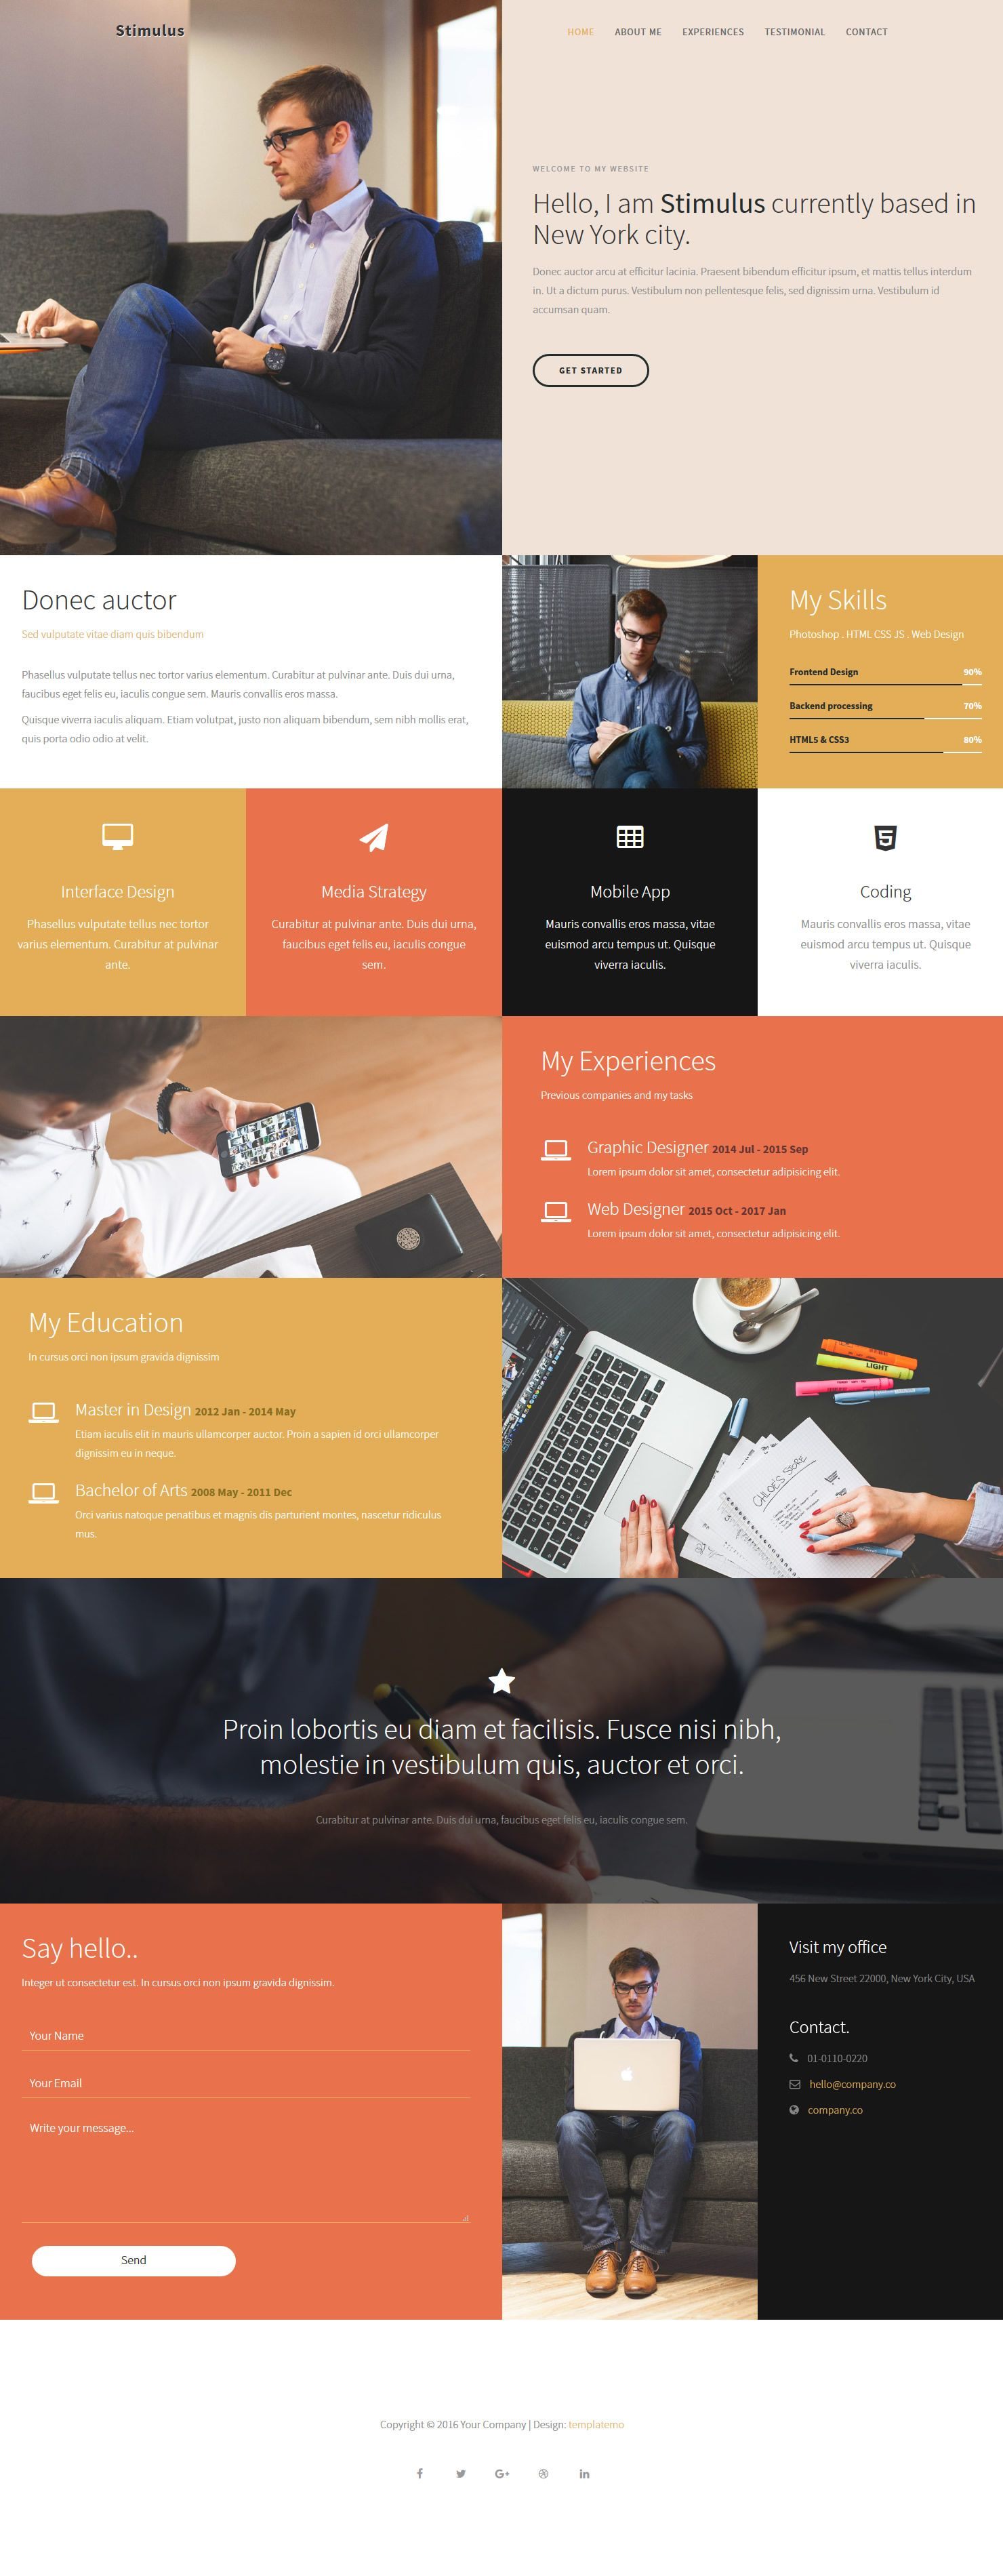 Webdesign Onepage Template Stimulus Template Is A One Page Html Css Layout With Metro Style Sections Gold Orange Red Web Design Webdesign Screendesign